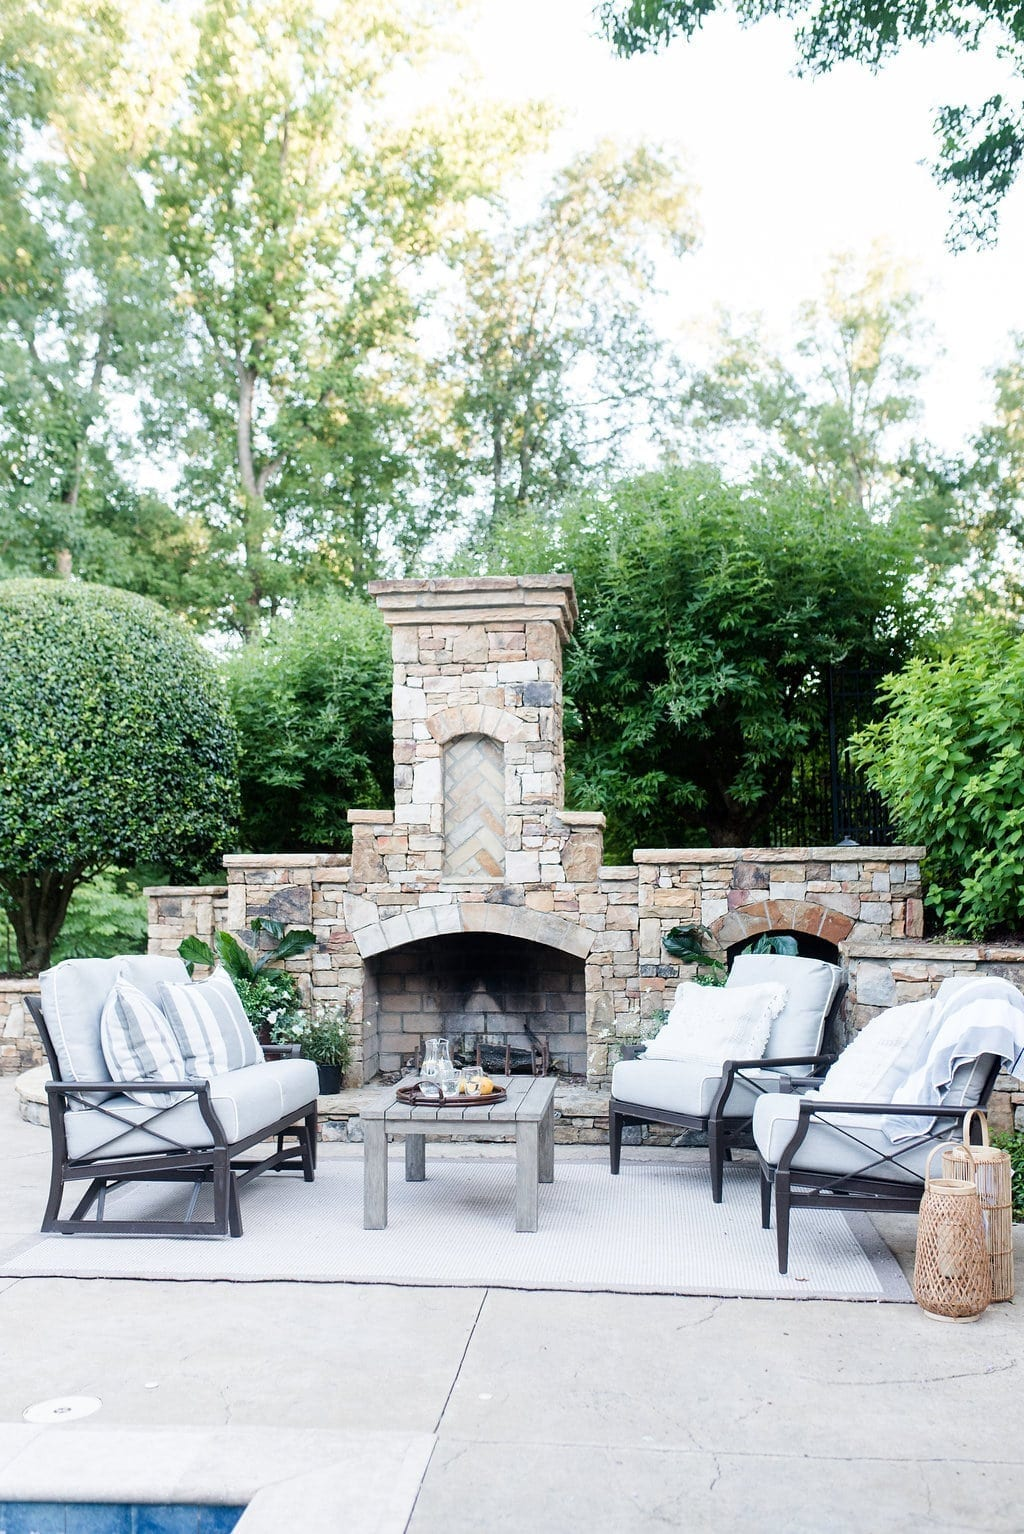 Outdoor fireplace furniture. Rocker glider chairs and love seat by the fireplace.